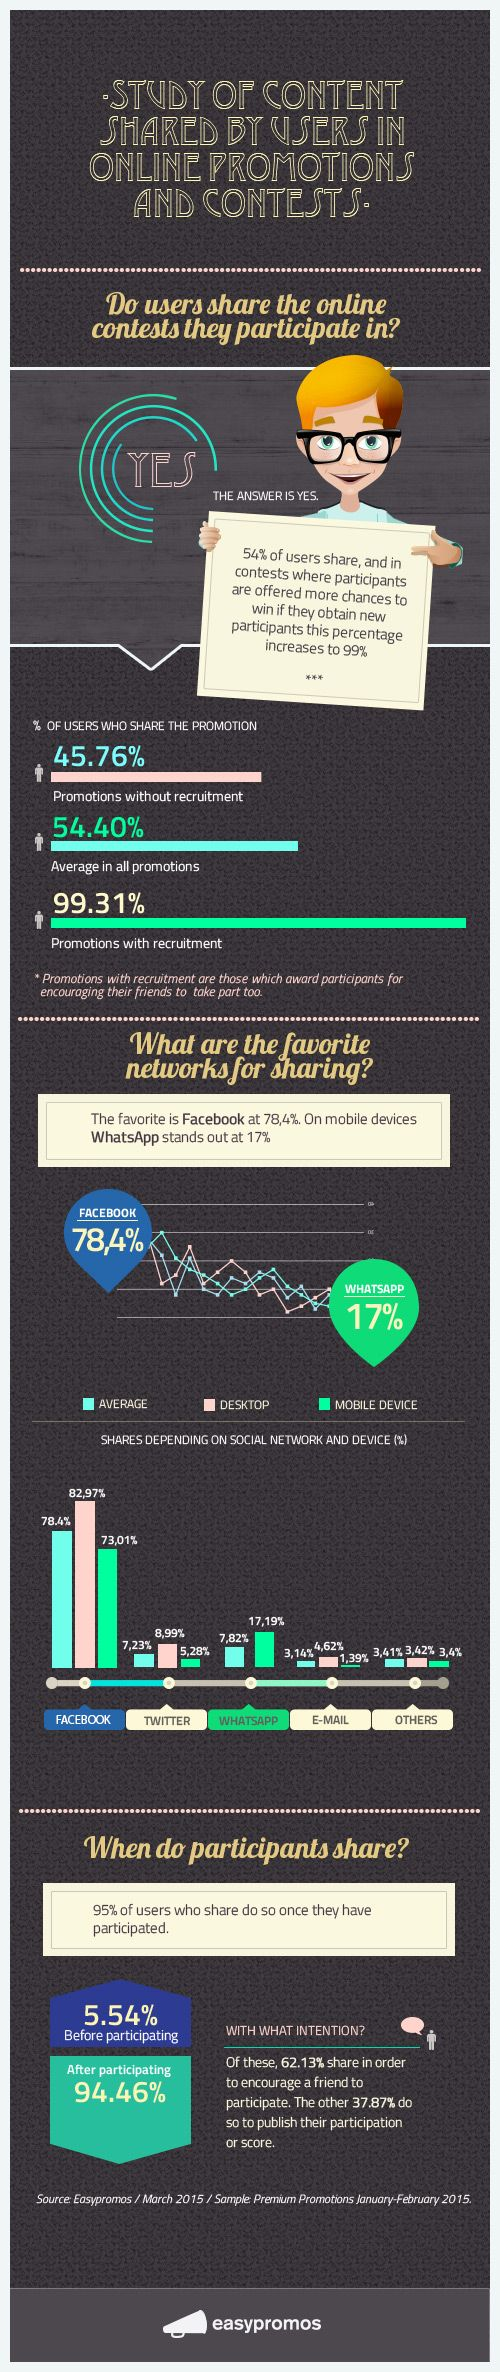 Infographic about how users share online contests they participate in